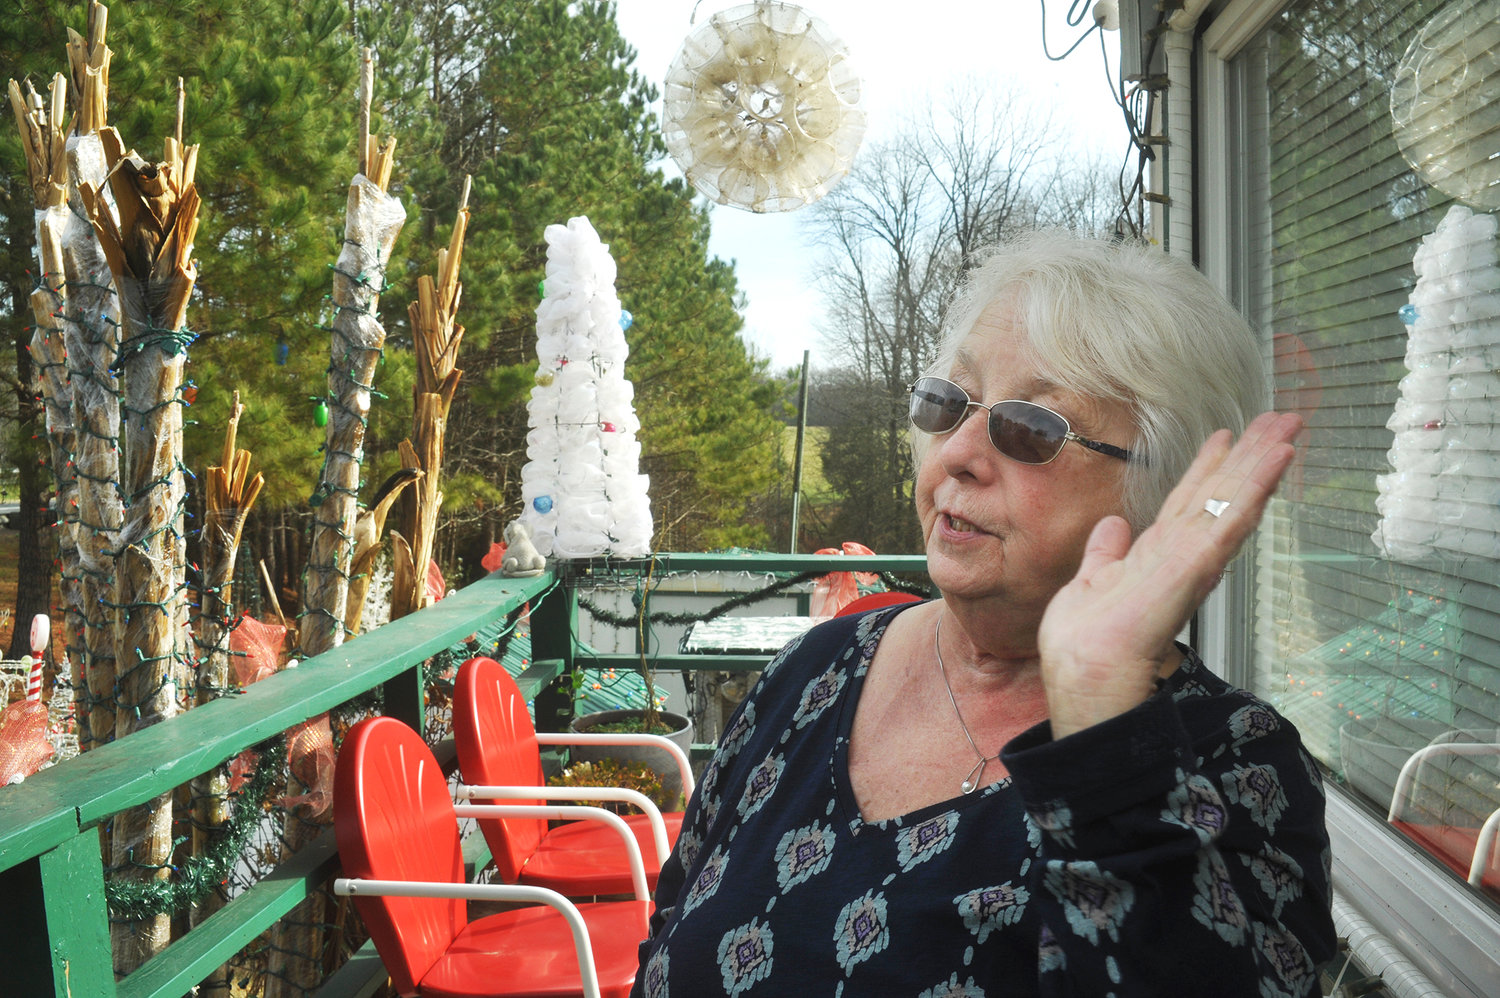 Glenda Johnson, surrounded by strings of holiday lights decorating the family home on U.S. Hwy. 64 between Siler City and Pittsboro, said she has received many 'thank-yous' over the years for her house's displays.